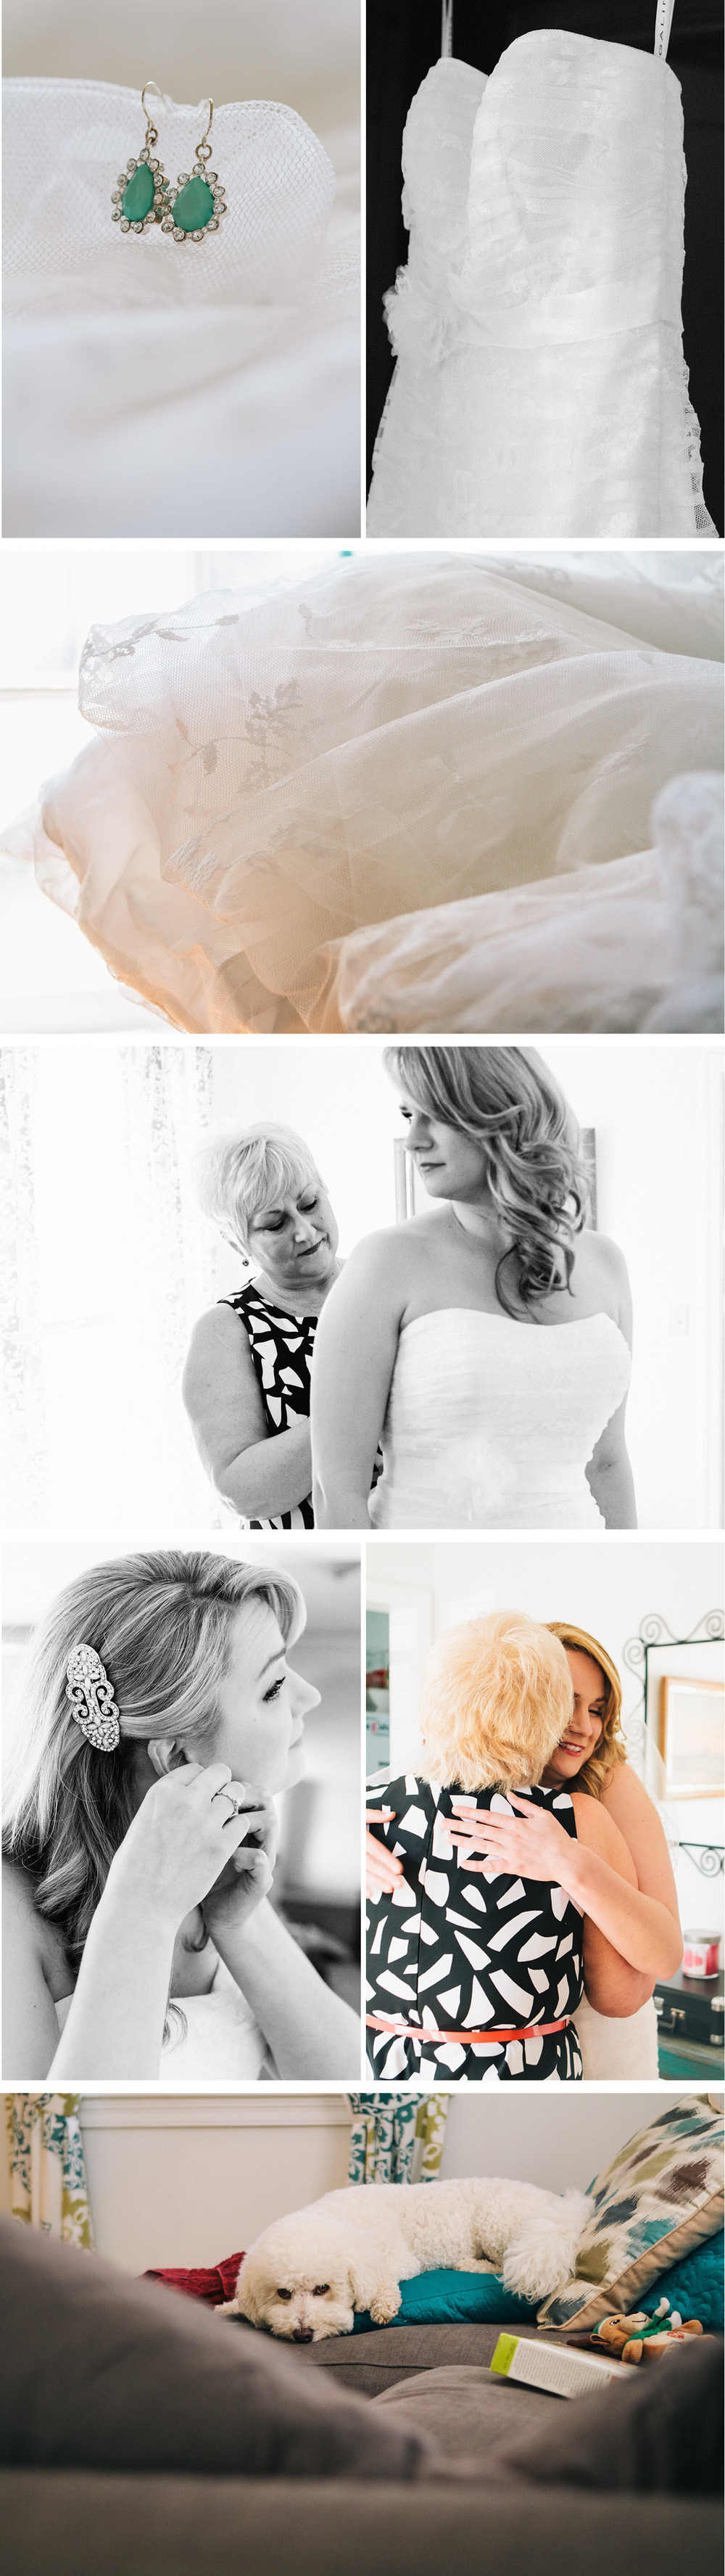 CK-Photo-Nashville-Wedding-Photographer-ST2.jpg